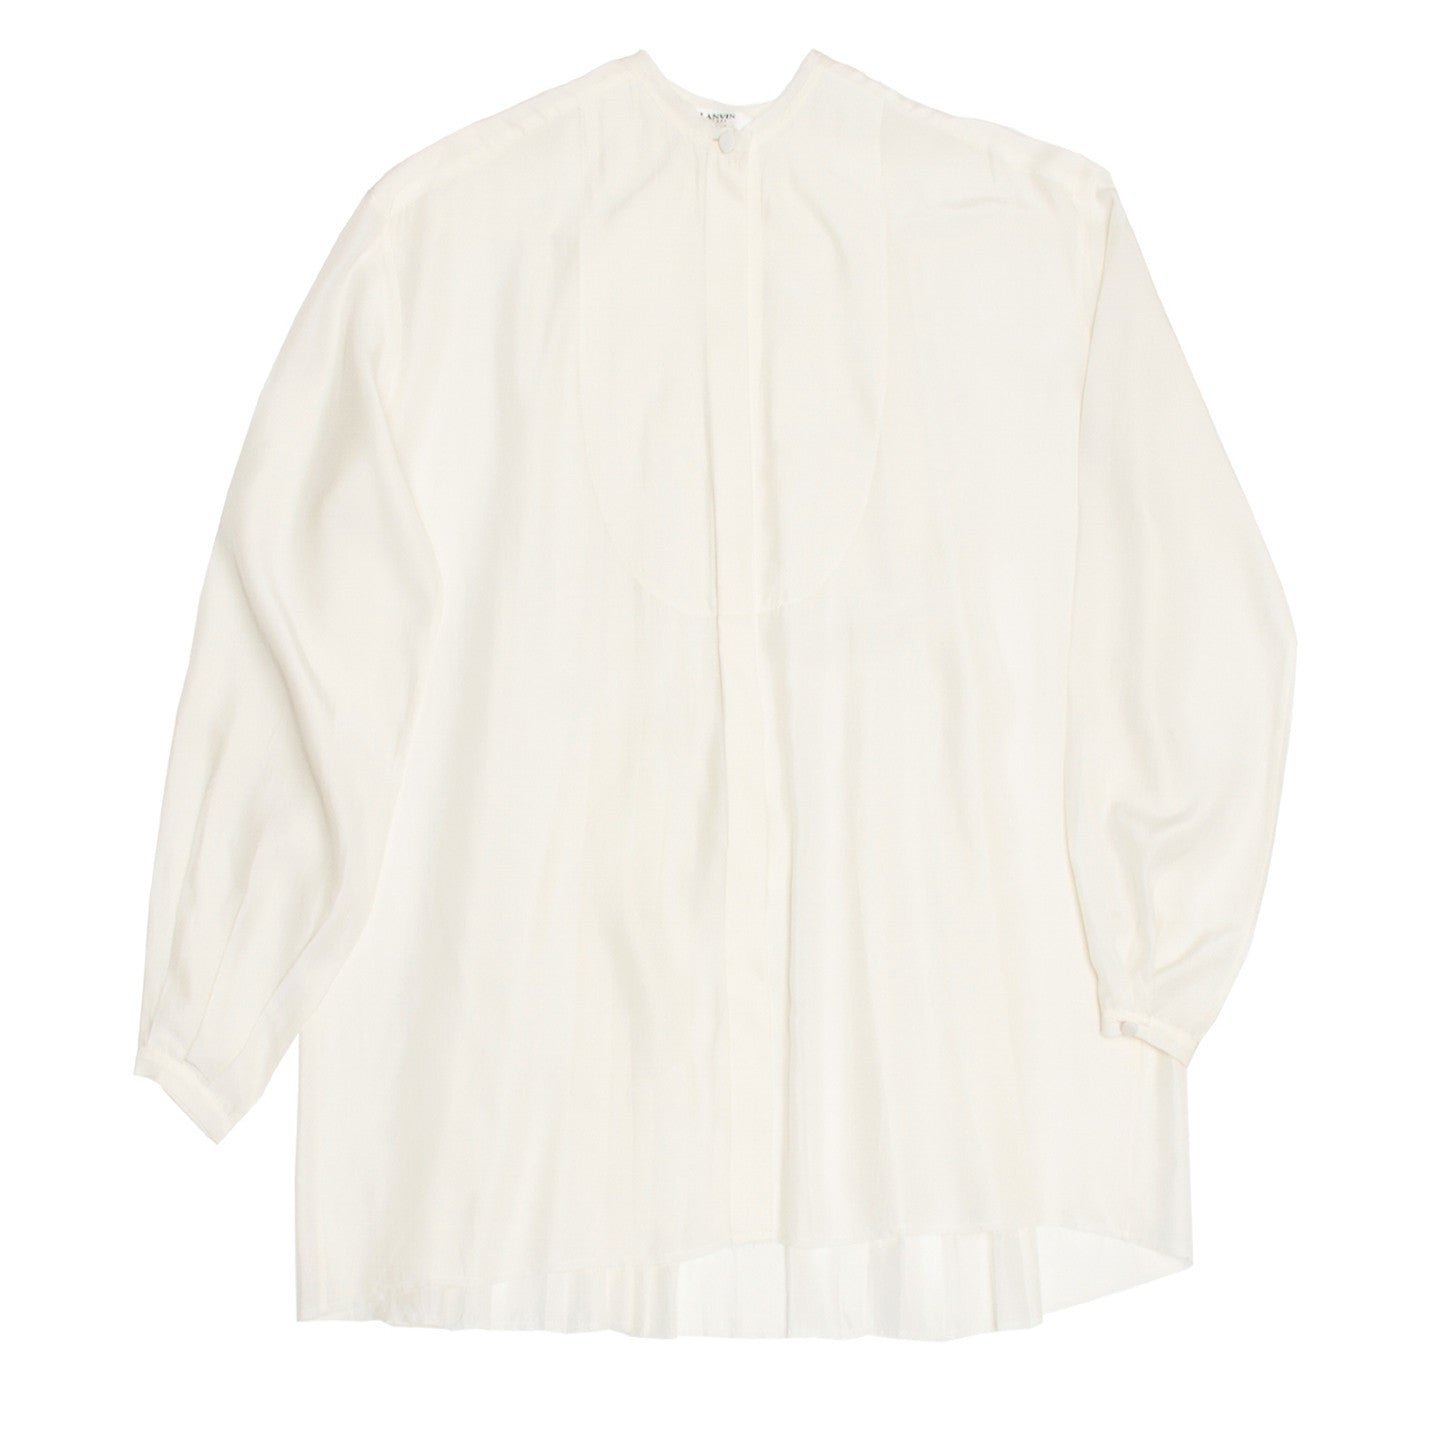 Find an authentic preowned Lanvin ivory silk shirt at BunnyJack, where a portion of each BunnyJack sale price is donated to charity.